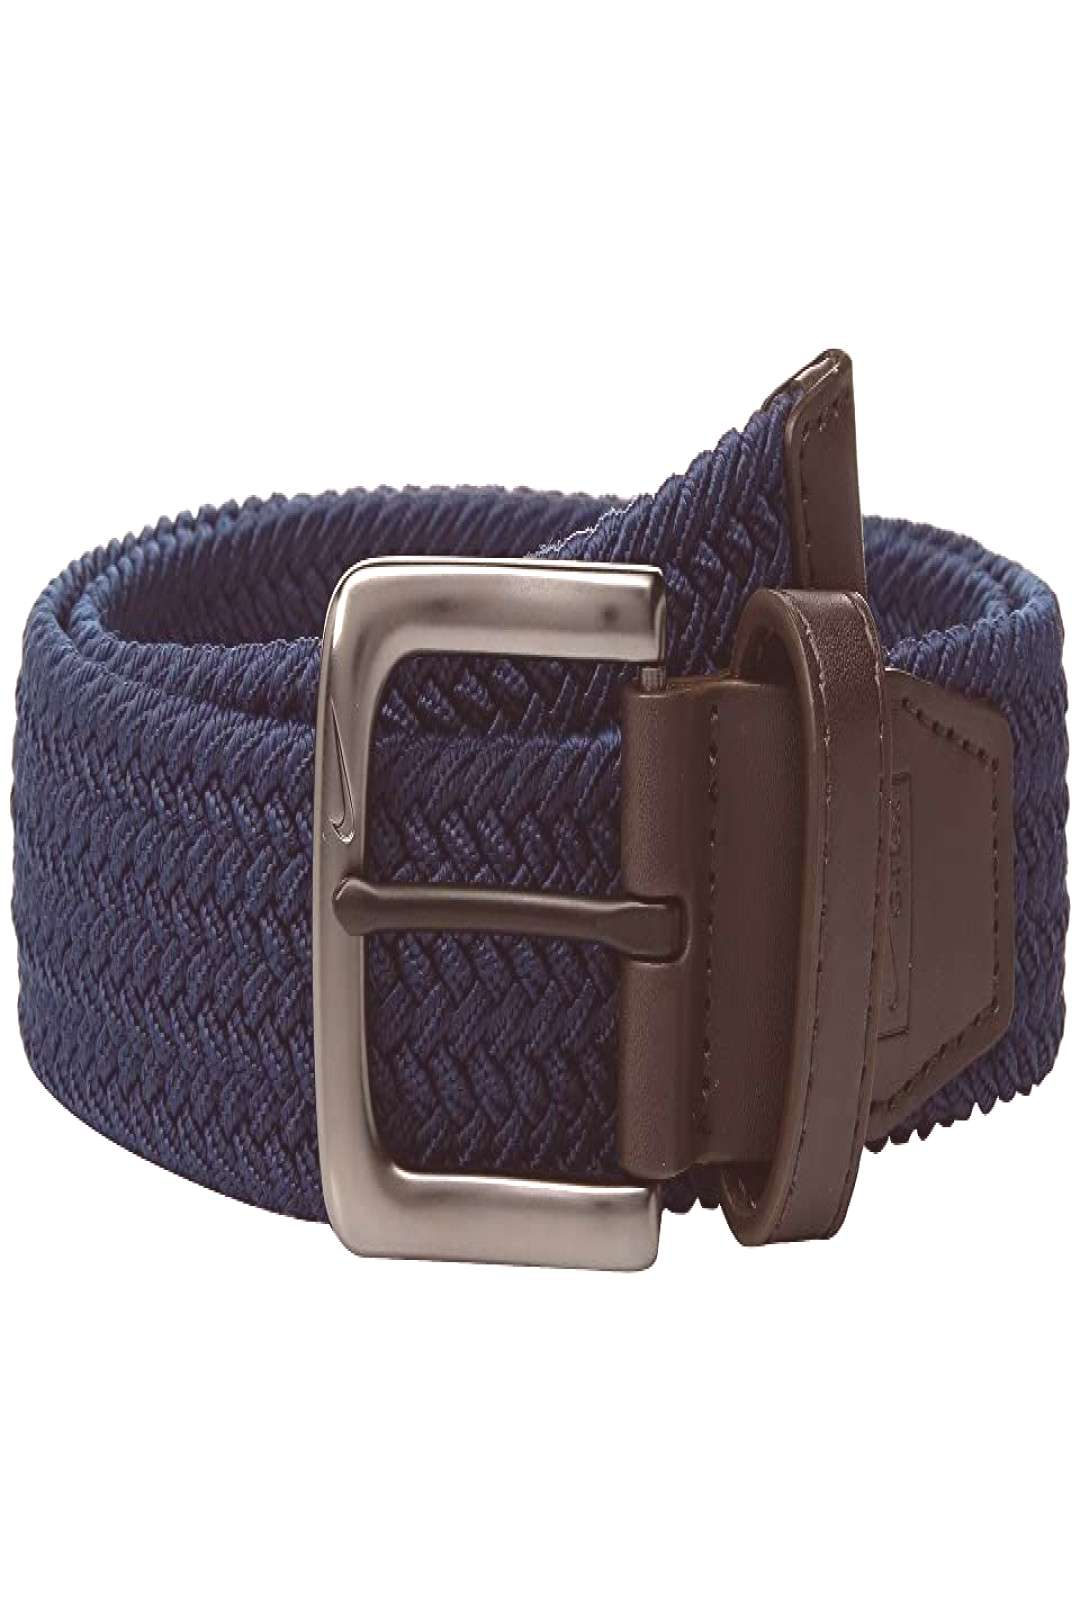 Nike Stretch Woven (College Navy) Mens Belts. Find a performance-focused balance between casual an